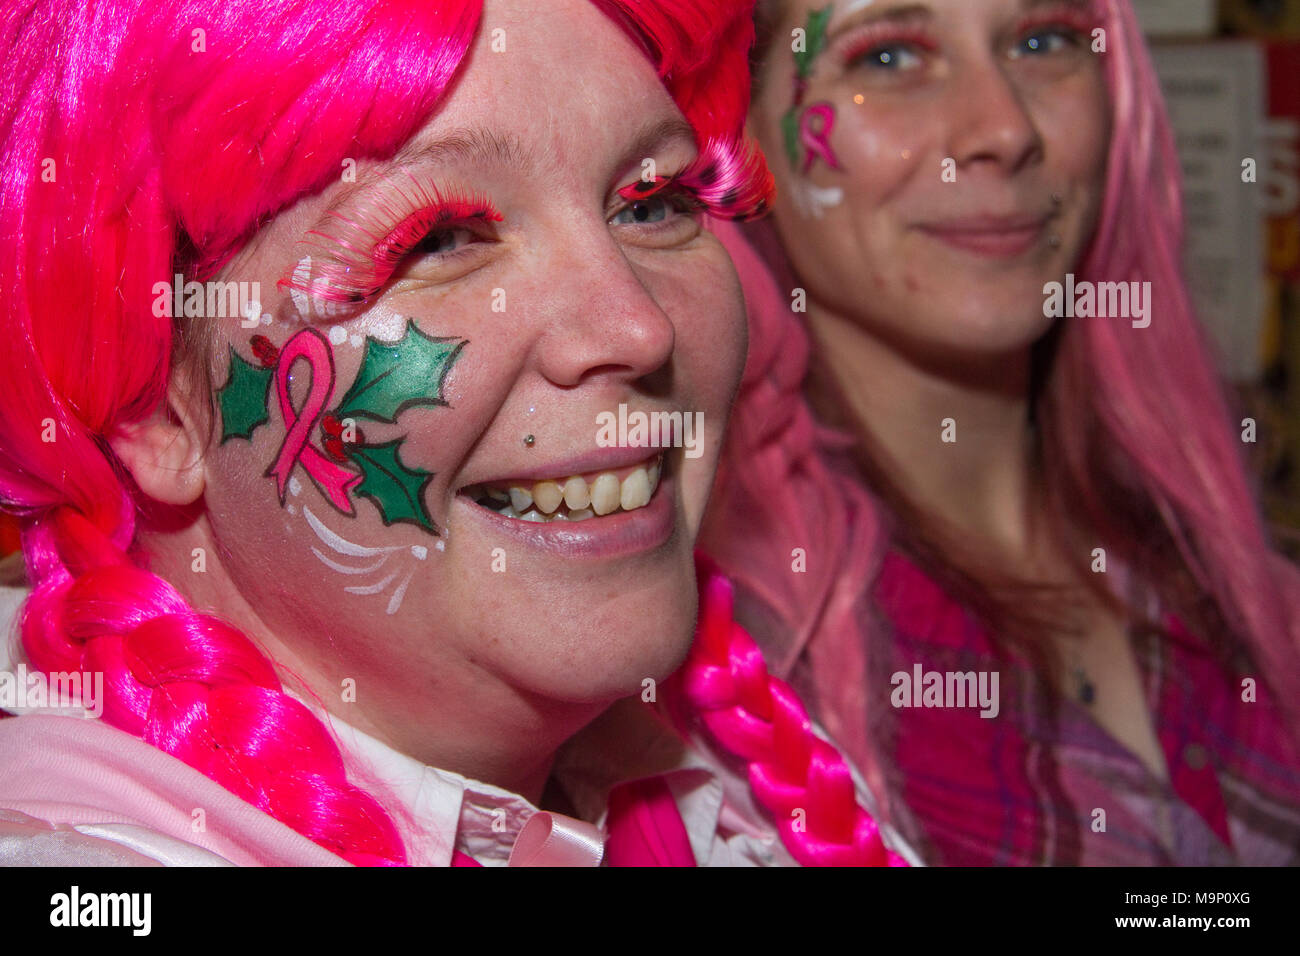 Woman in pink wig with holly painted on her face at a Christmas Fair - Stock Image